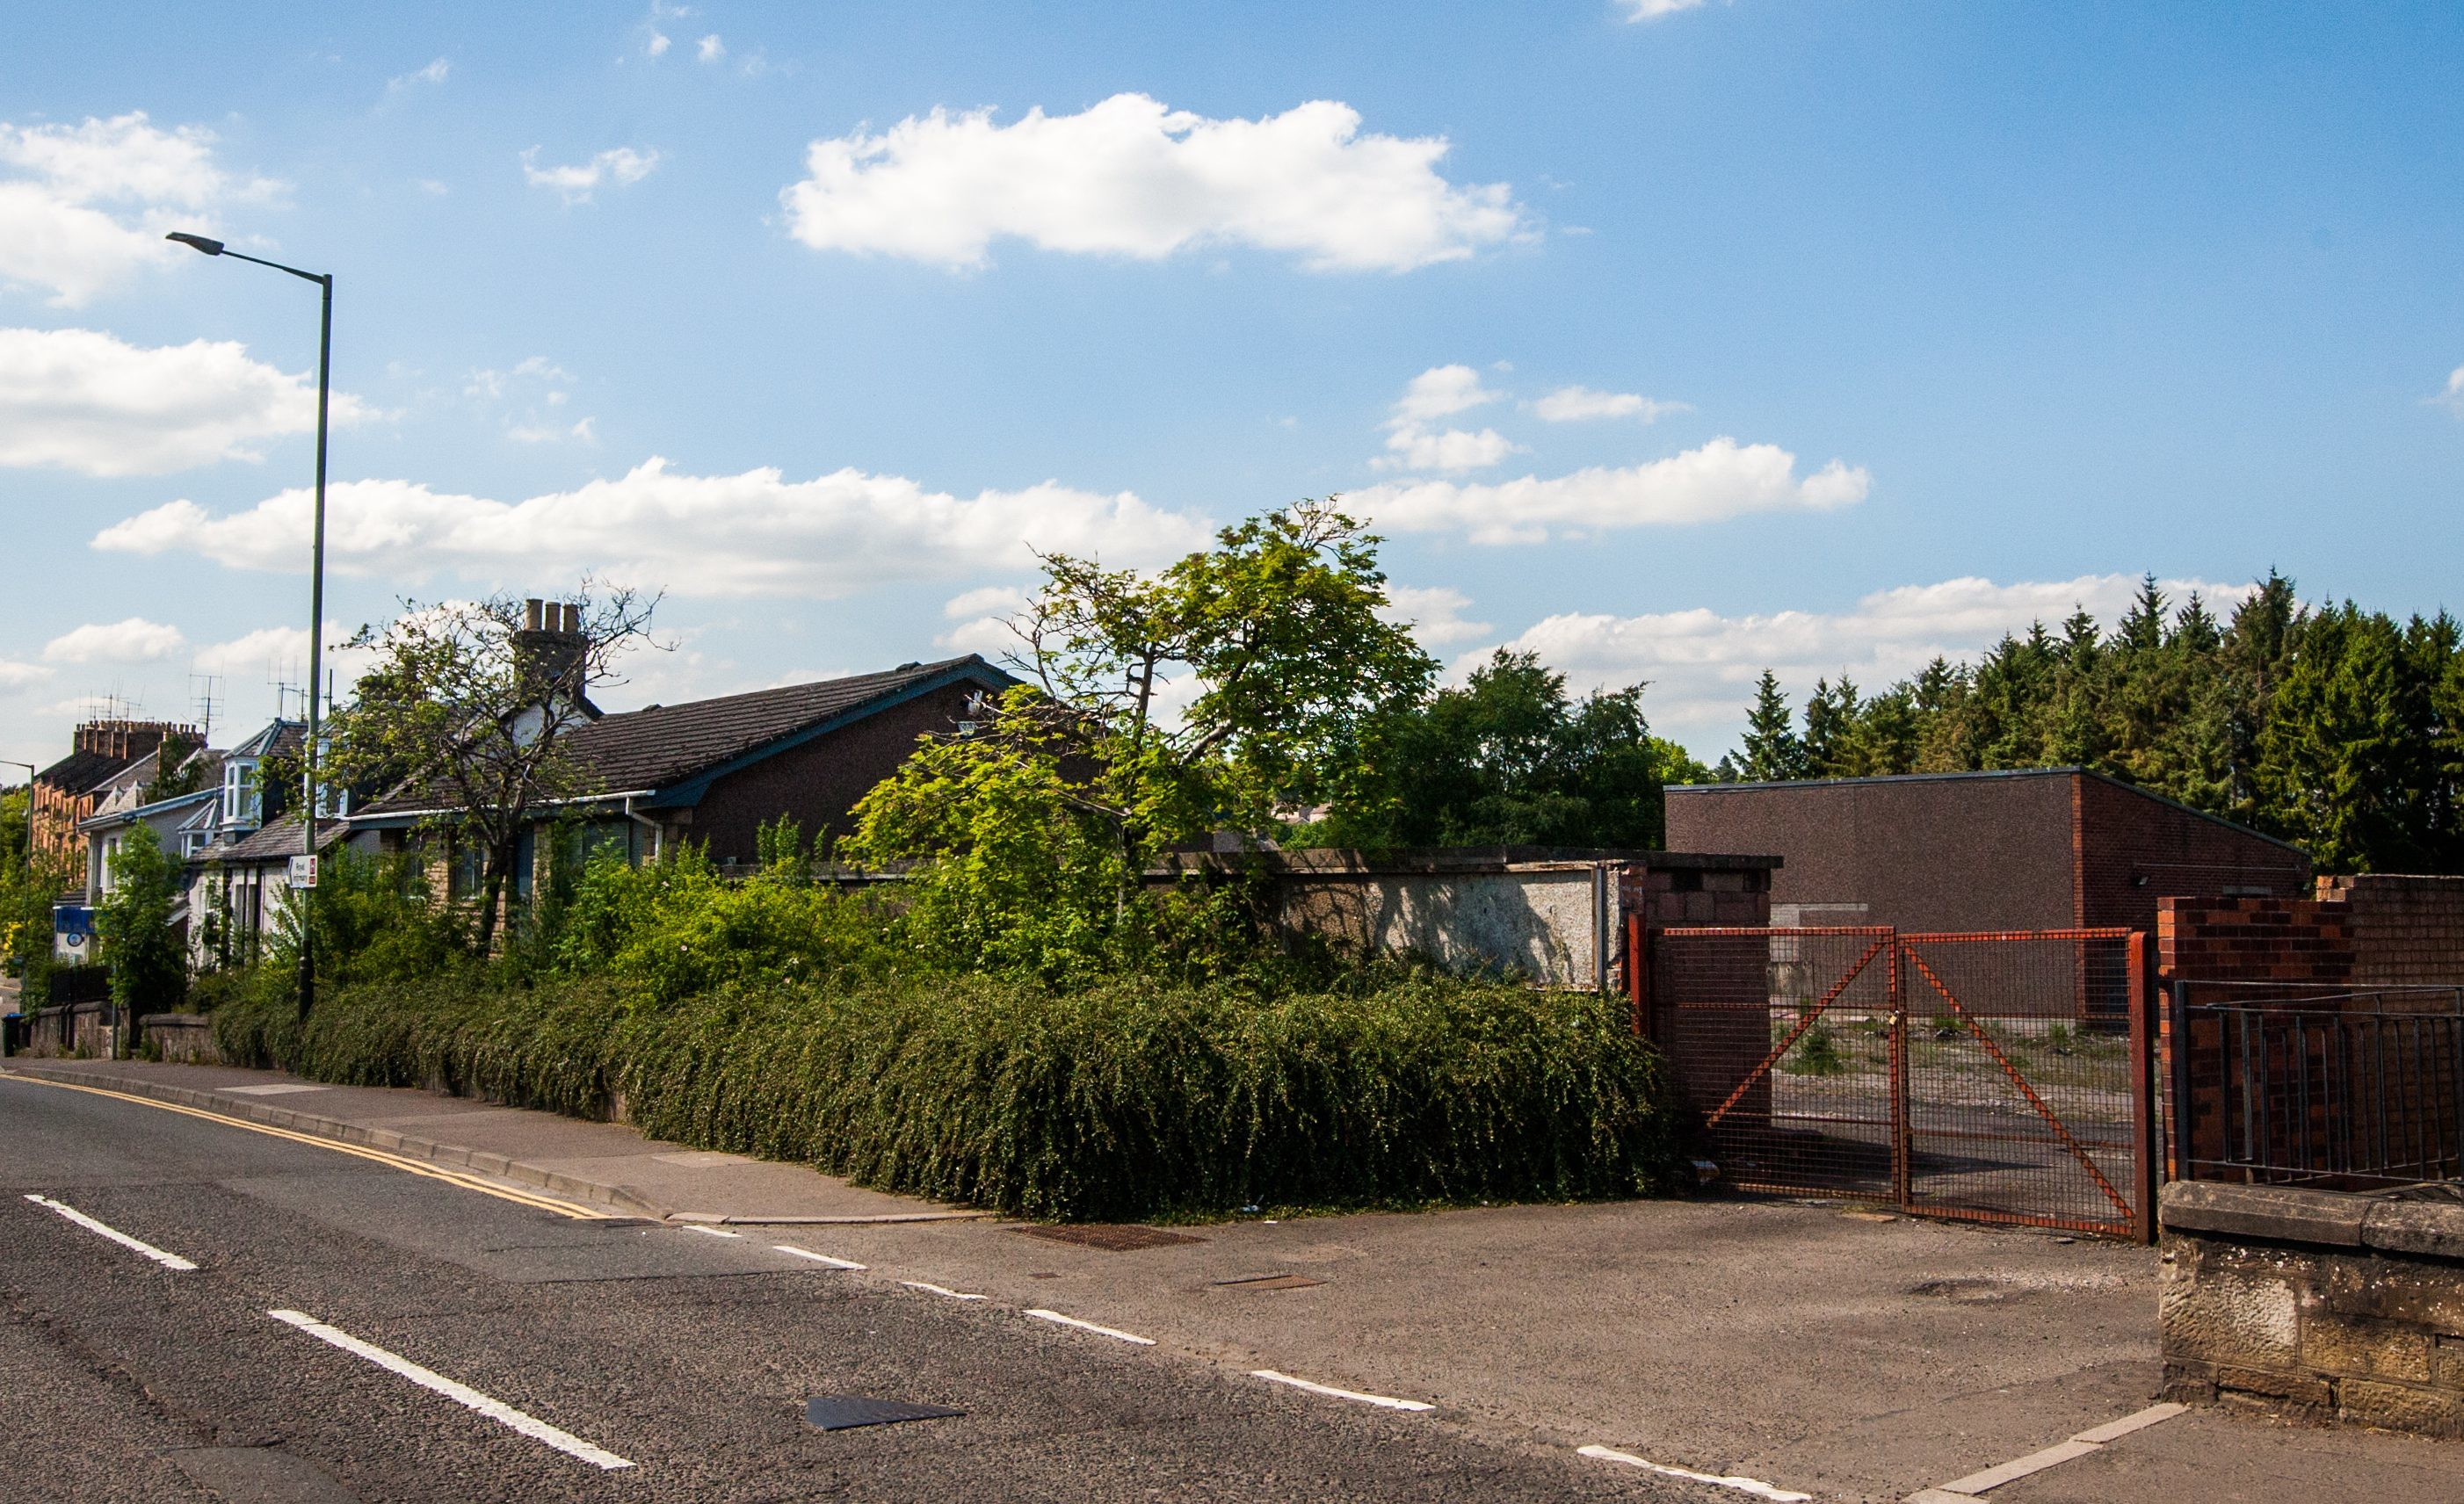 The site of the proposed mosque, Jeanfield Road, Perth